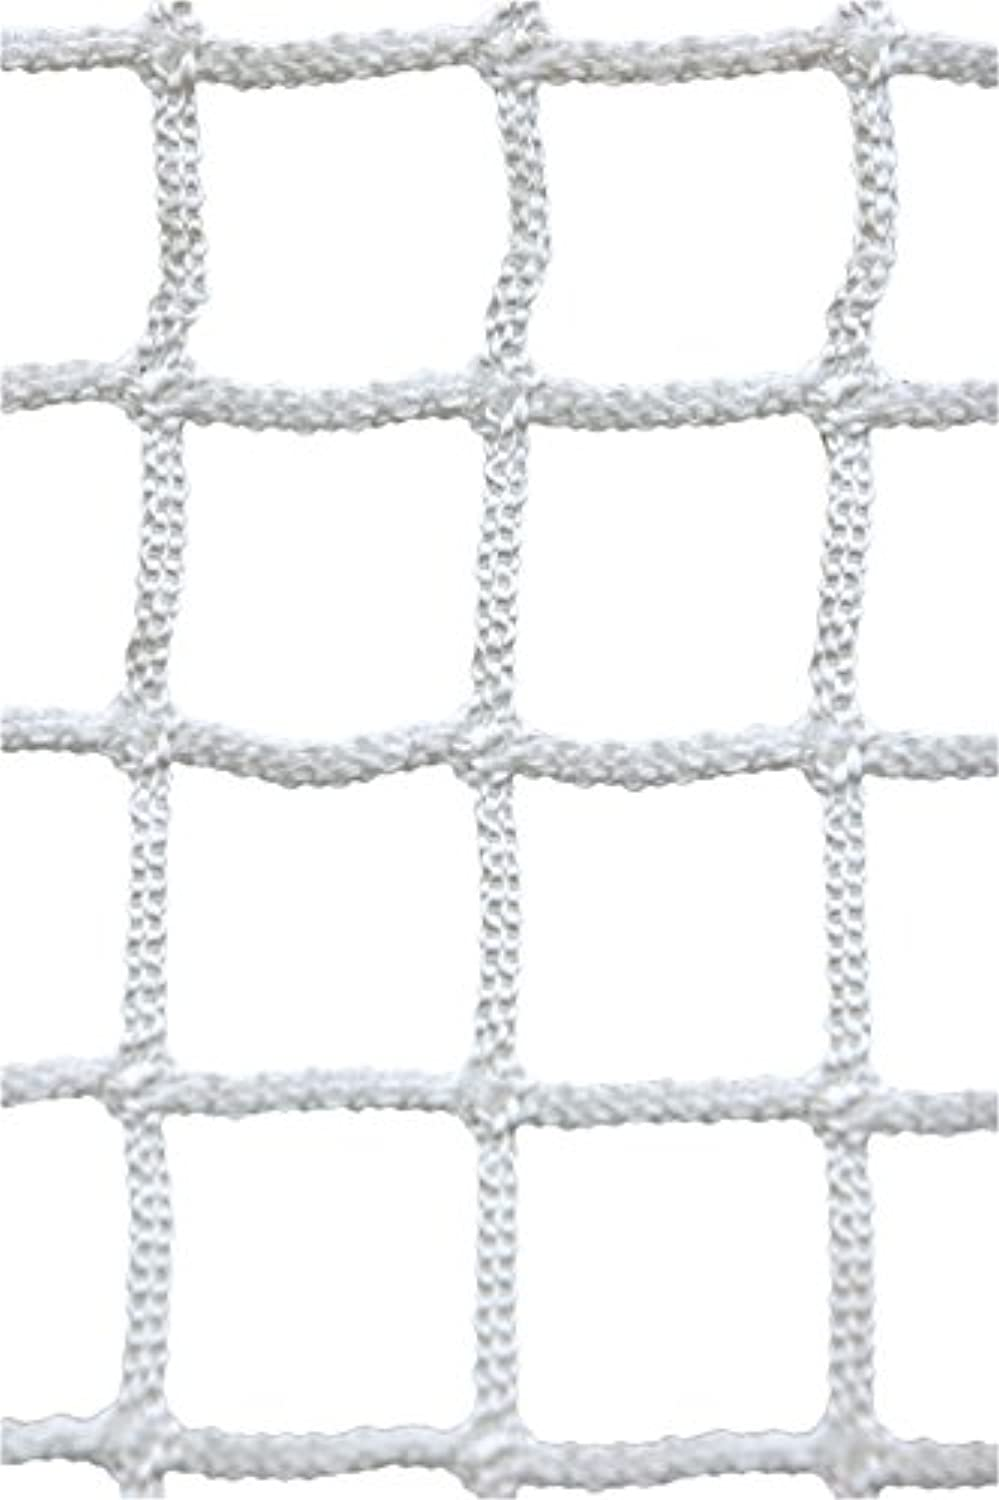 Brine Championship Lacrosse NetHiExtension Polyester Knotless 1.5Inch Mesh6 x 6 x 7Feet 4.0mm